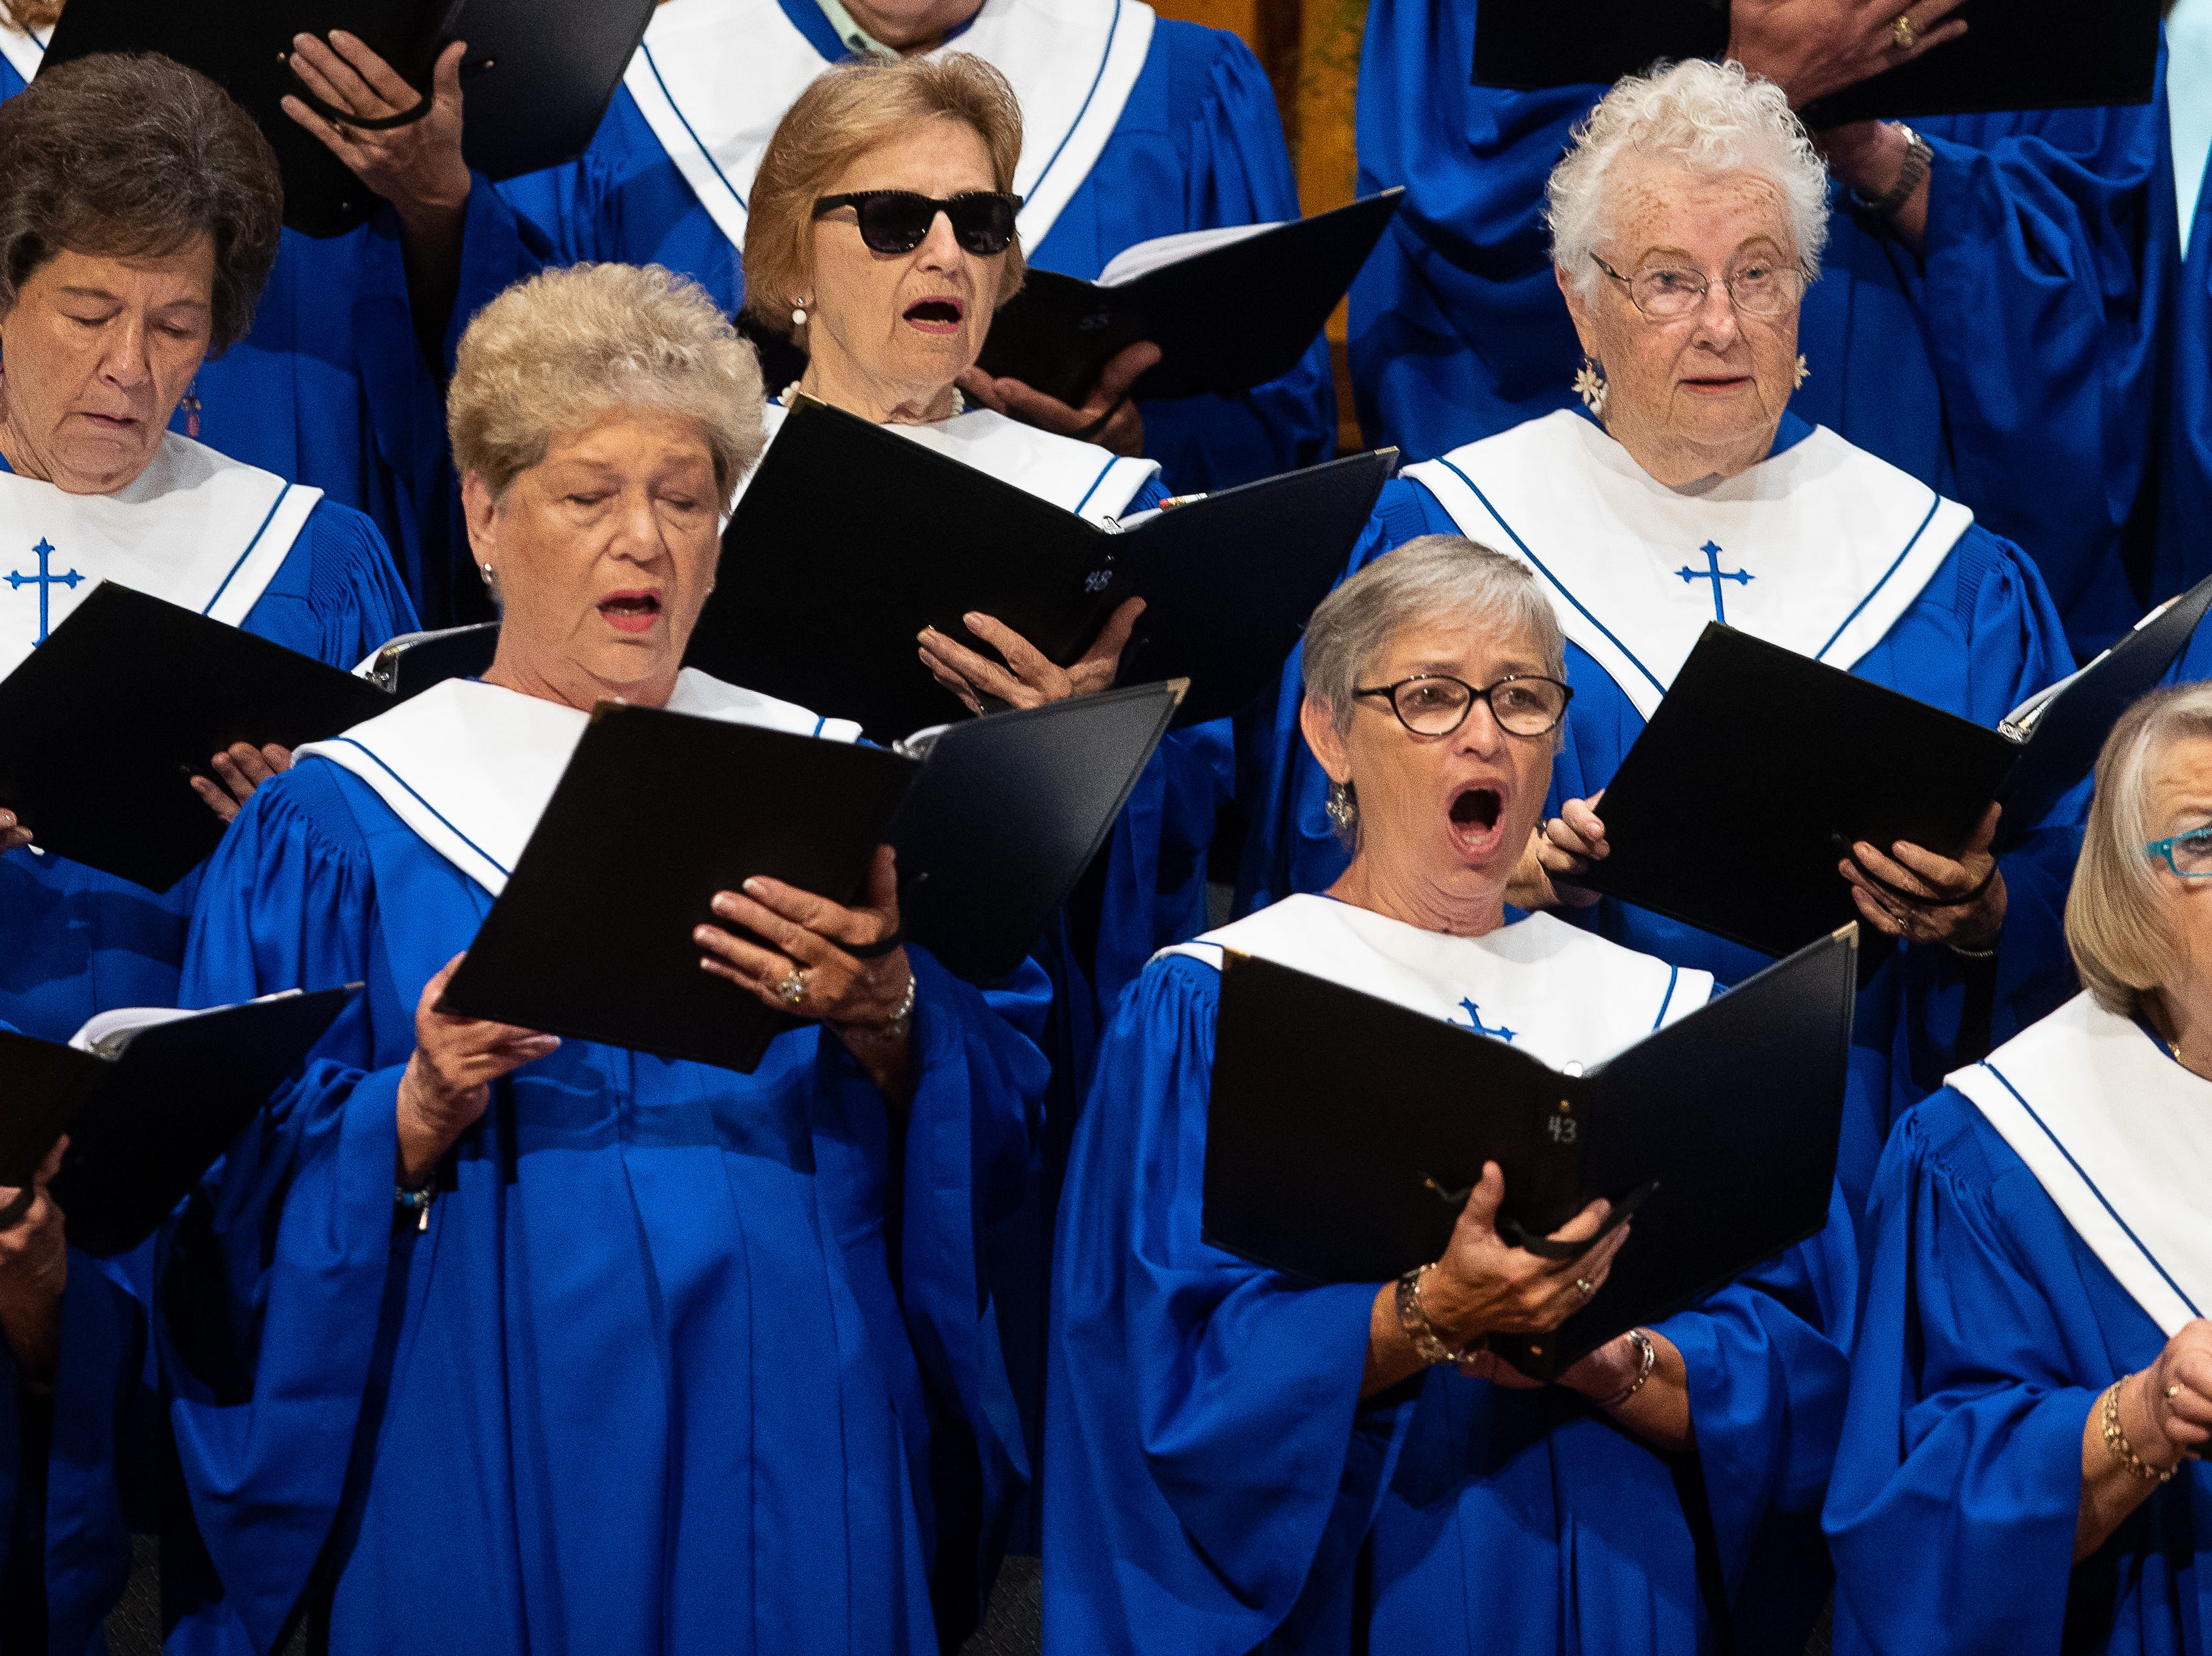 The choir sings at First Baptist Church of Rockport during a Hurricane Harvey anniversary service attended by Gov. Greg Abbott on Sunday, Aug. 26, 2018.